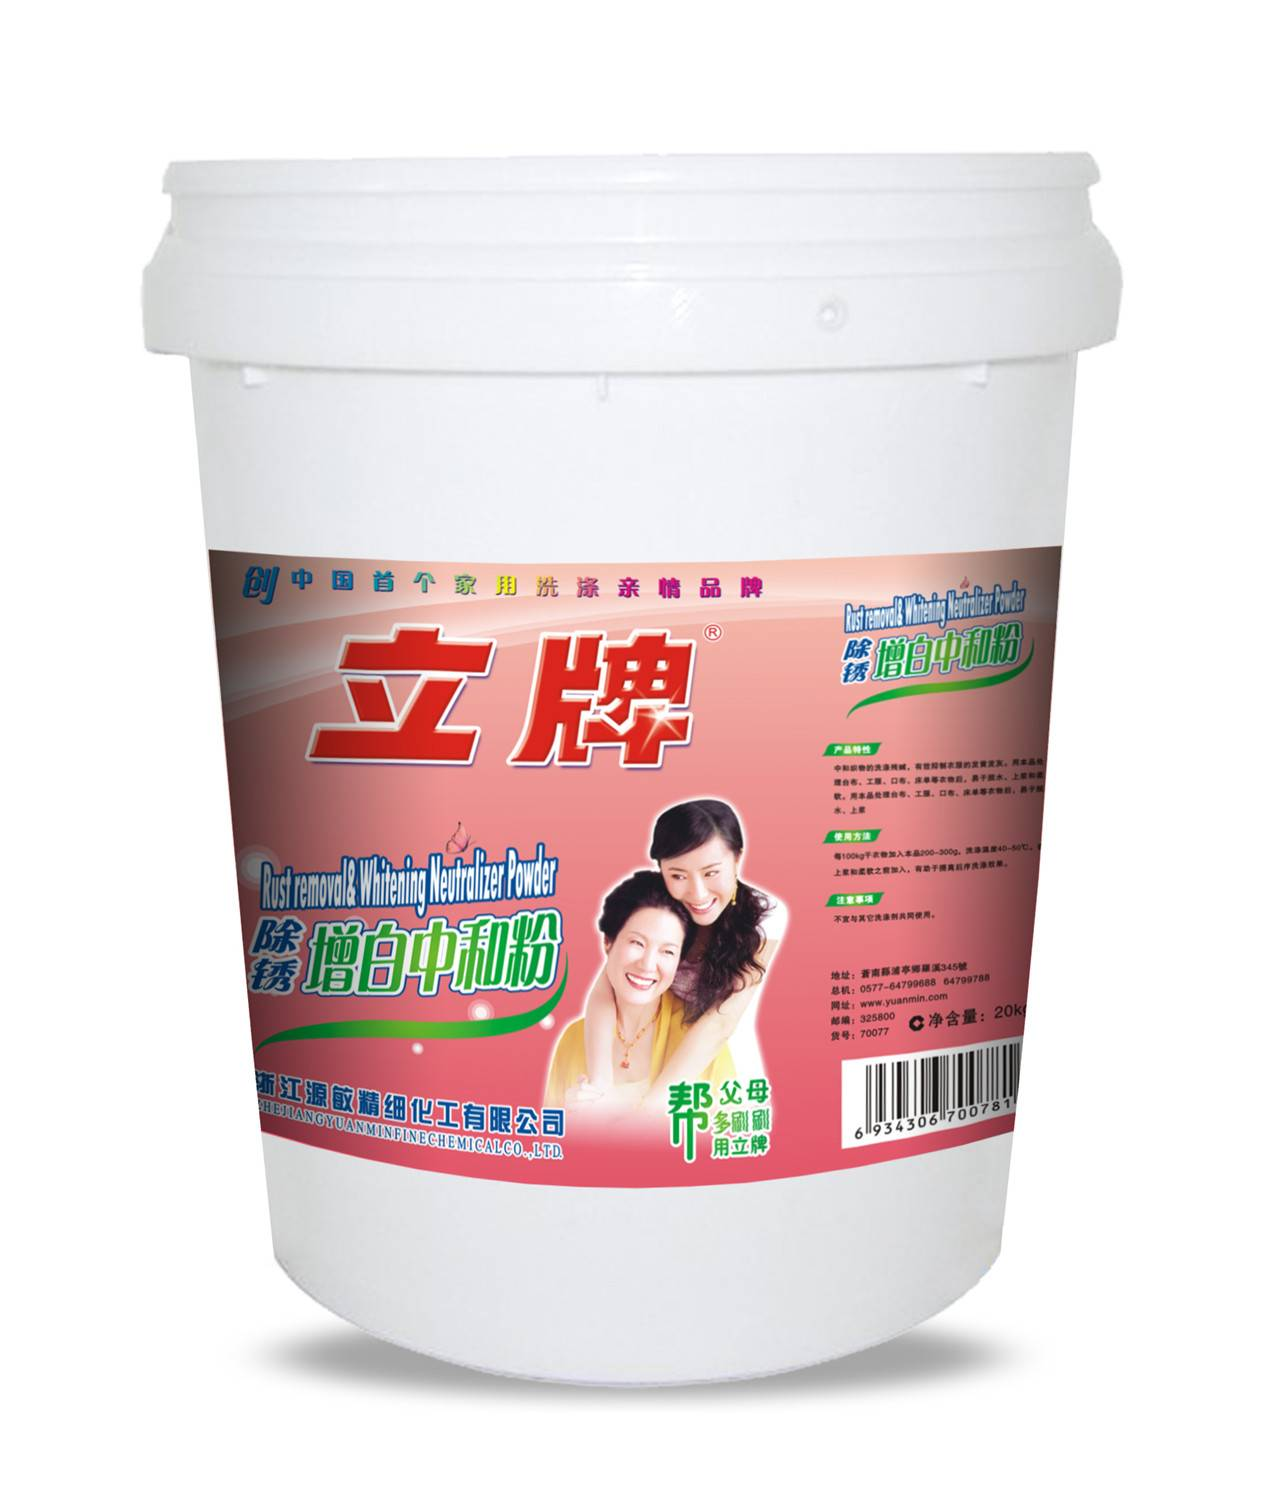 Lipai Rust-removal & Whitening Neutralizer Powder;The Laundry, Hotel Use;OEM